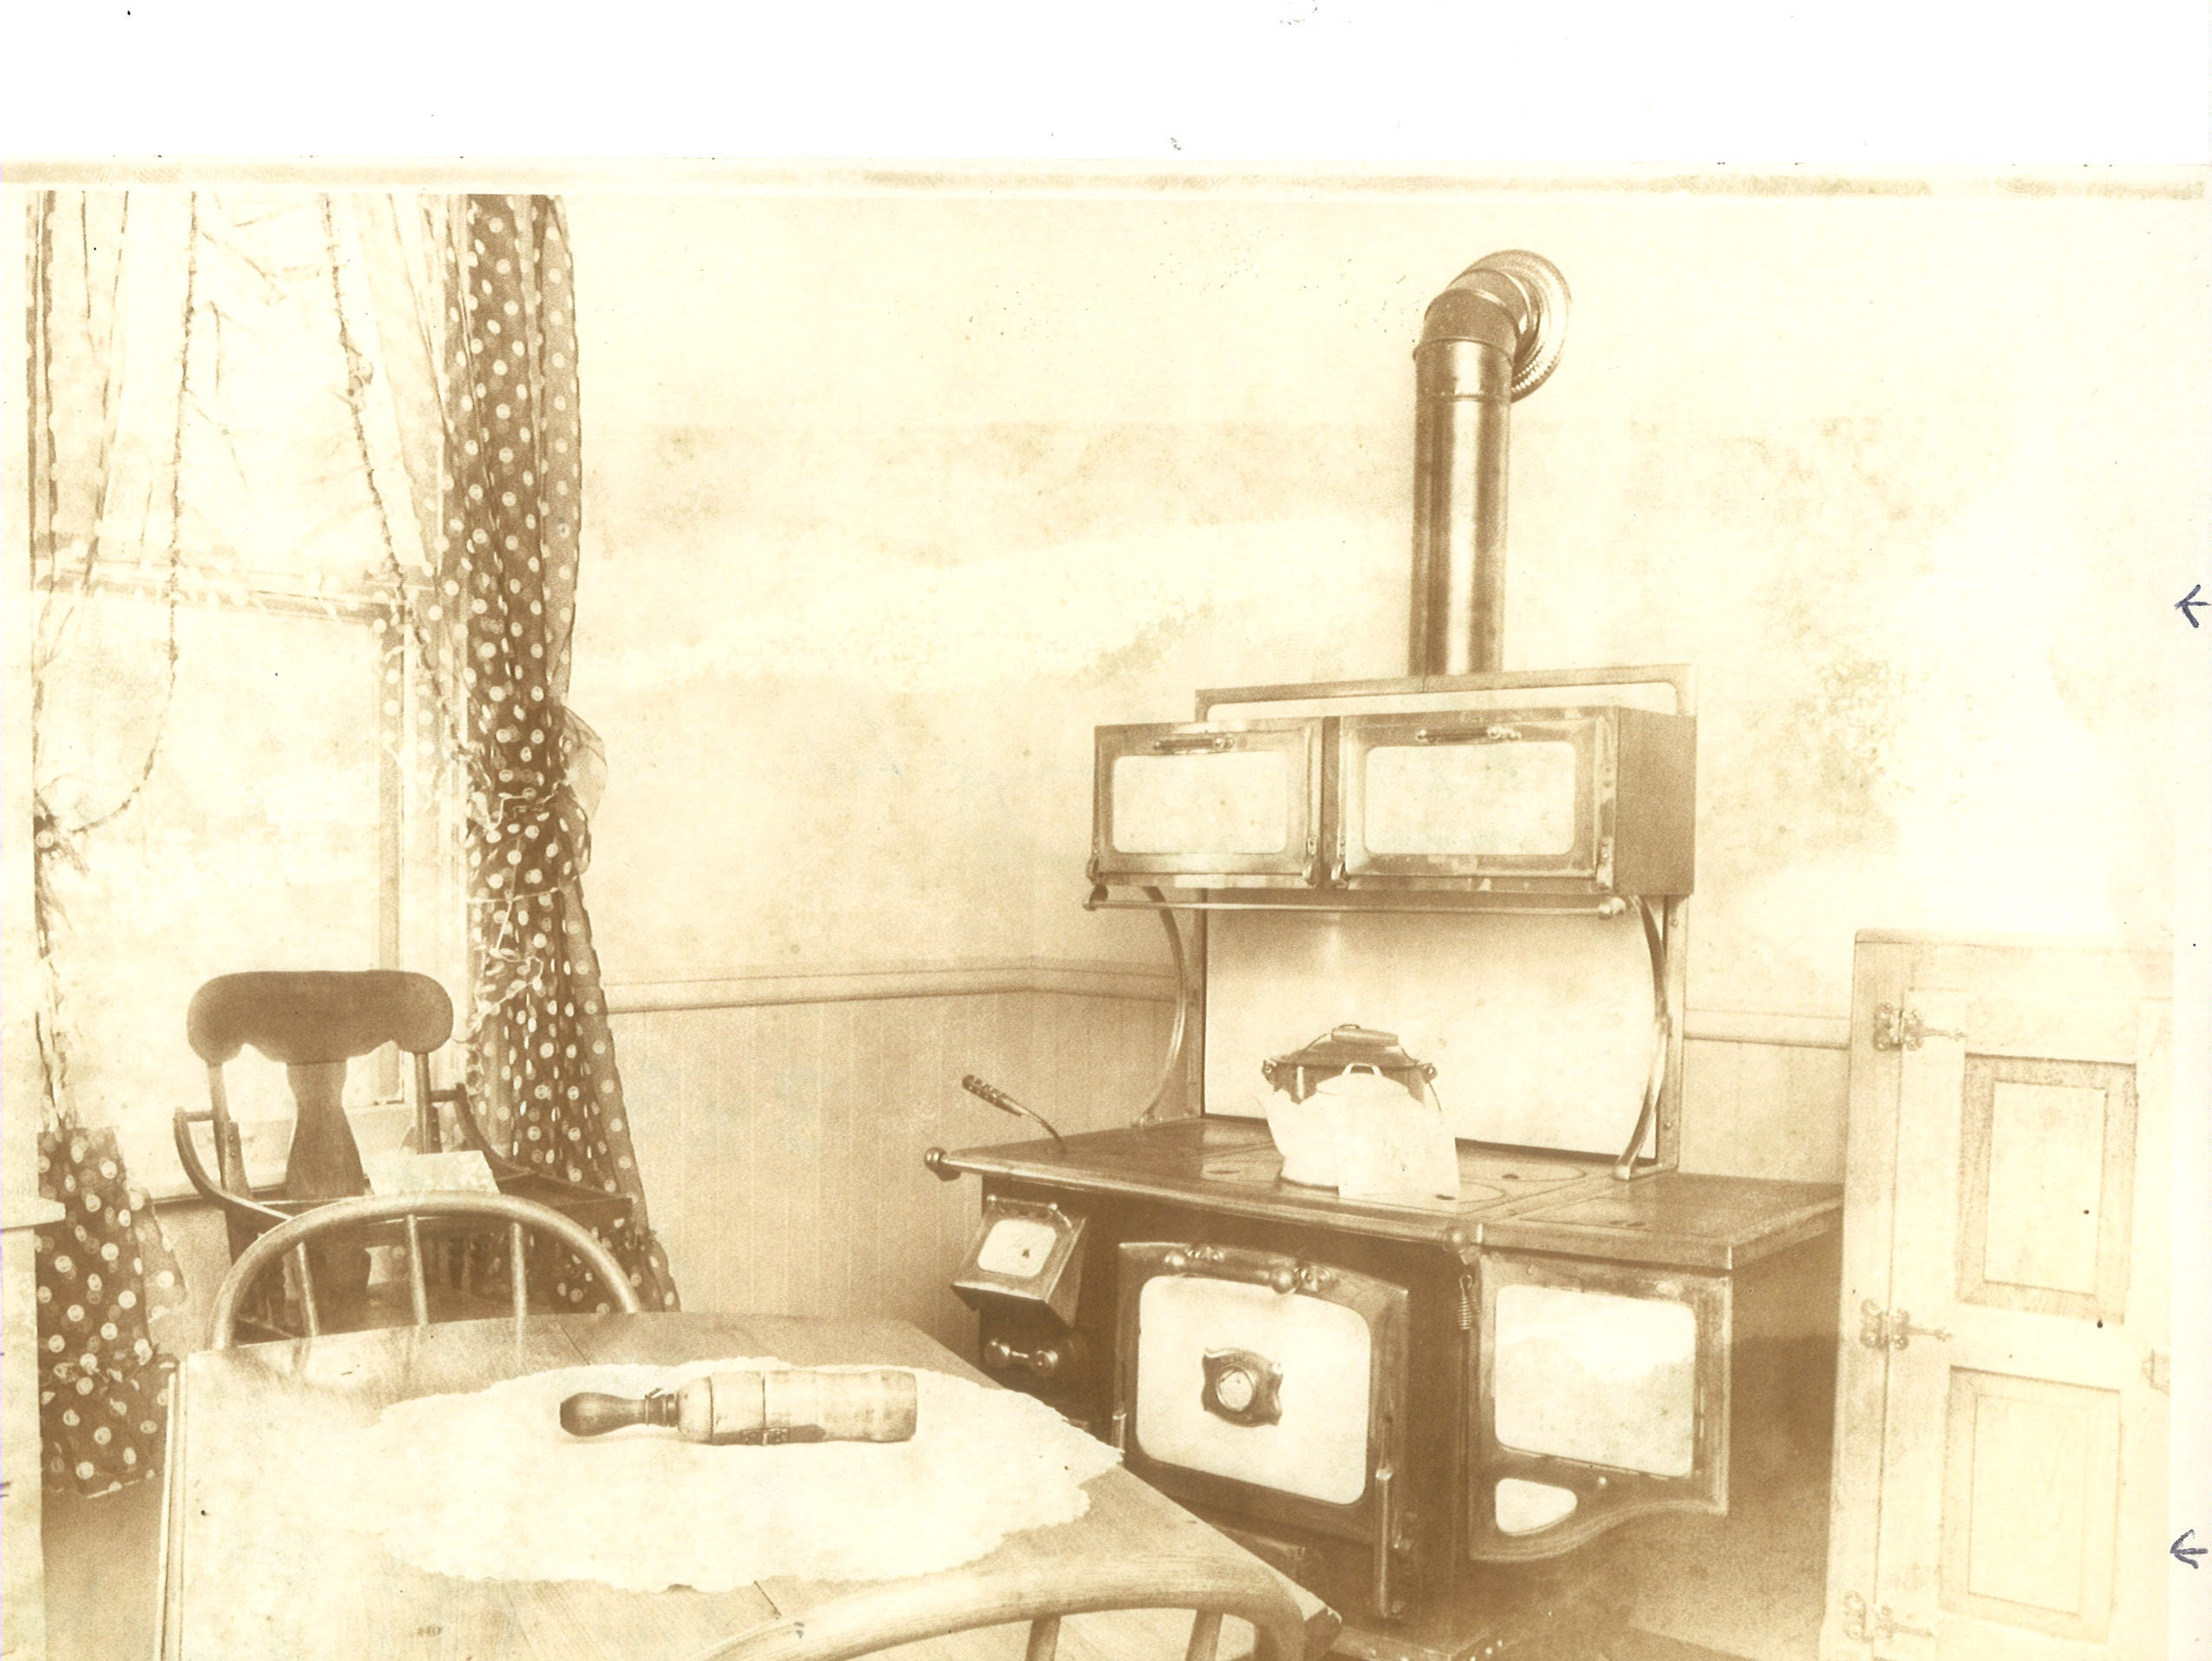 Life in Great Falls 40 years ago: 1978 kitchen